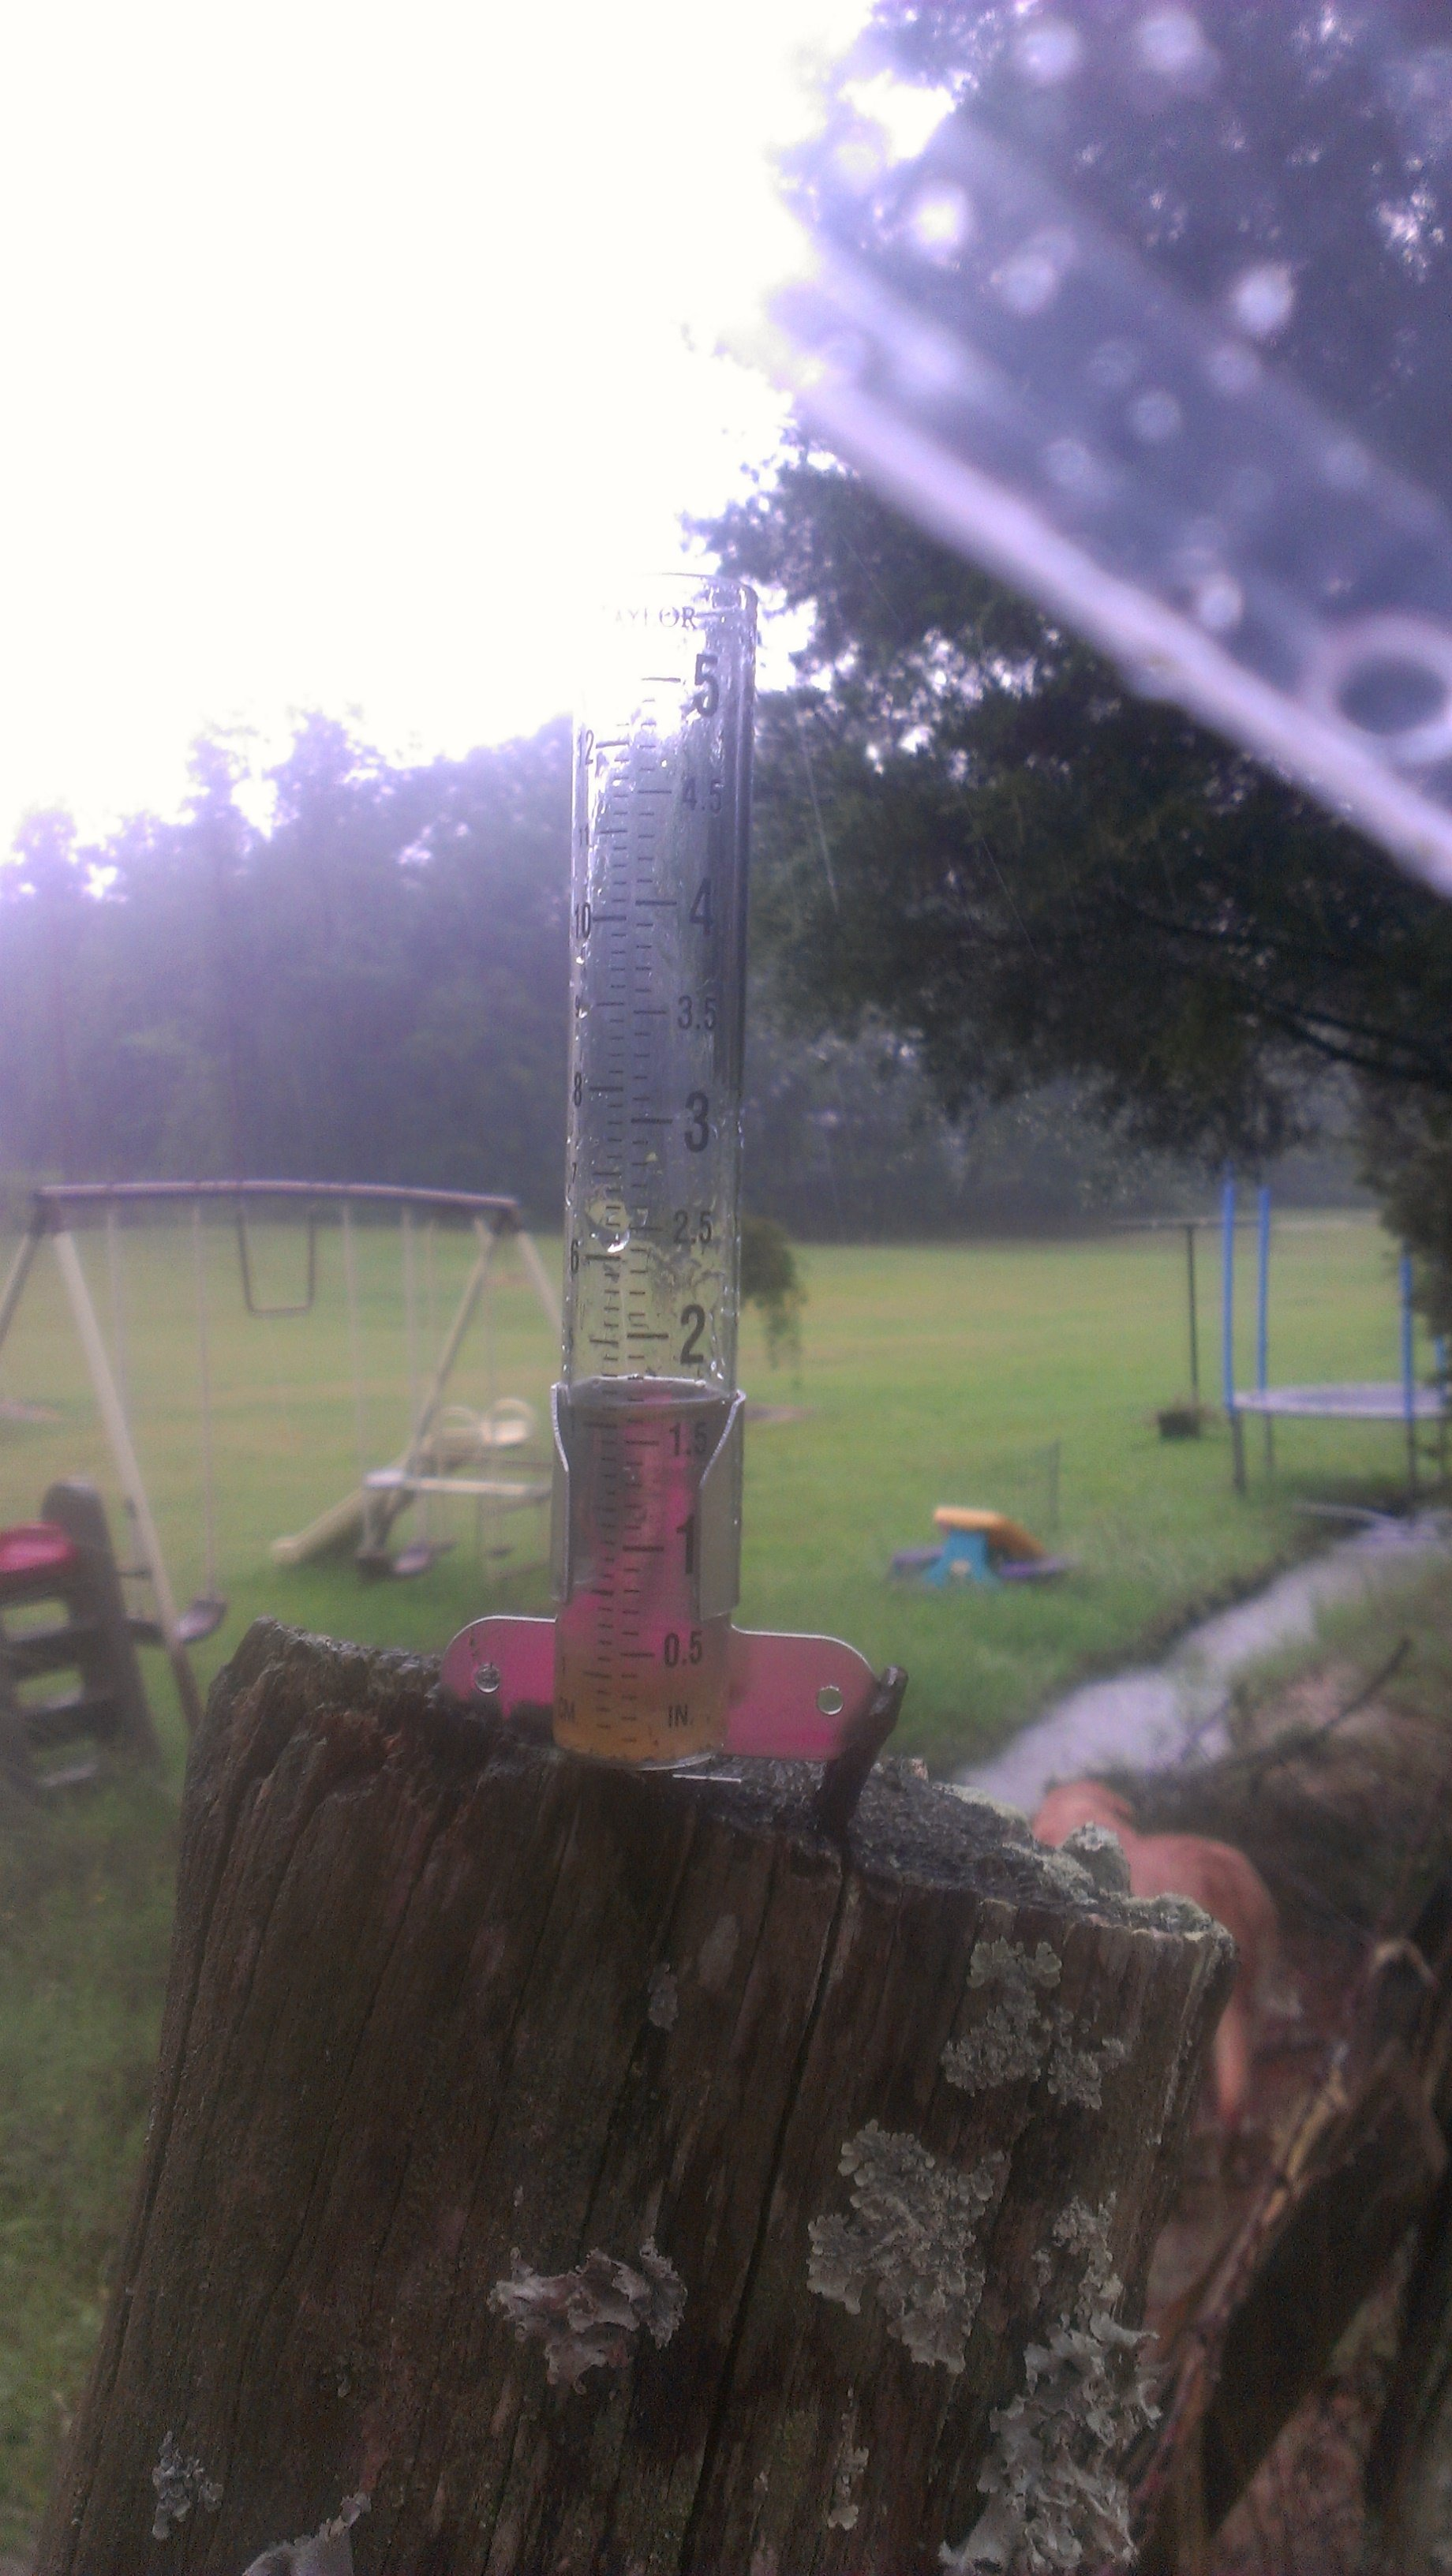 From Candice in Fountain Inn